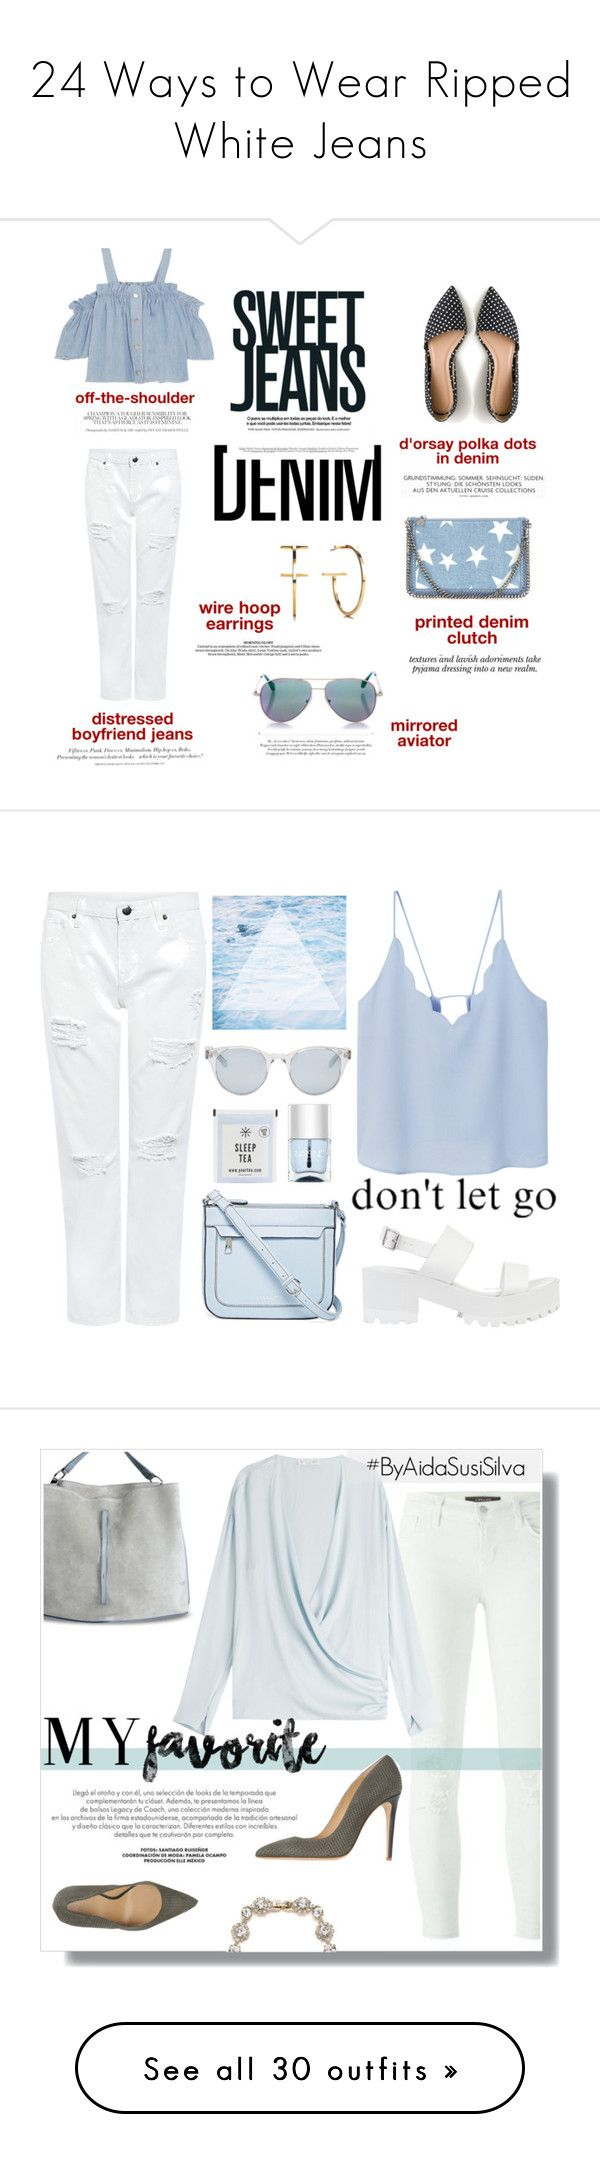 """""""24 Ways to Wear Ripped White Jeans"""" by polyvore-editorial ❤ liked on Polyvore featuring waystowear, rippedwhitejeans, Steve J & Yoni P, Edit, H&M, J.Crew, STELLA McCARTNEY, Nicole, Cutler and Gross and Denimondenim"""